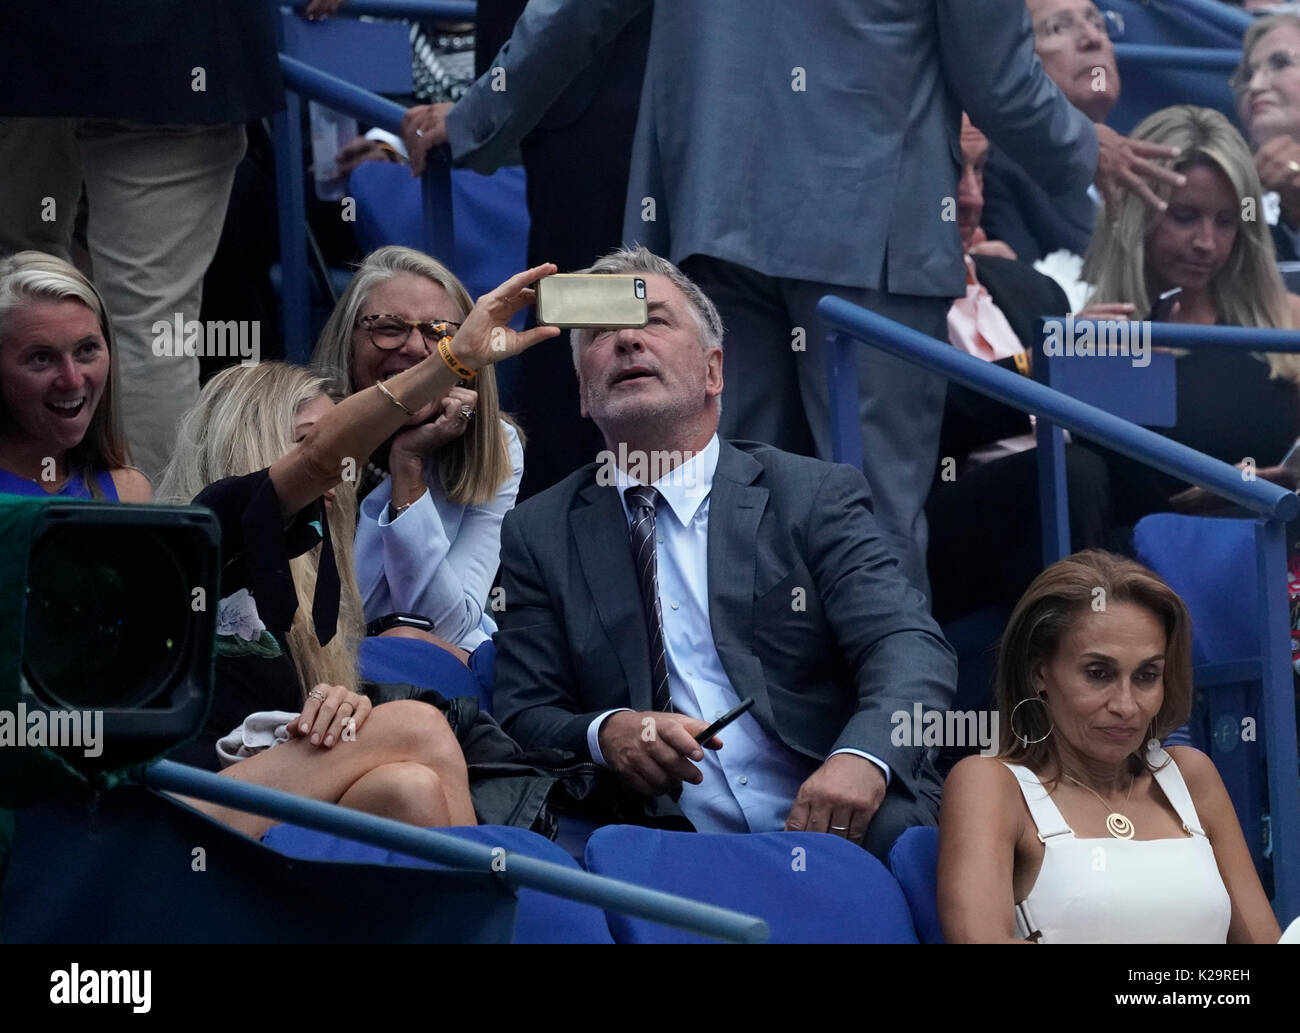 New York, United States. 28th Aug, 2017. Alec Baldwin attends US Open Championships day 1 at Billie Jean King Tennis center Credit: Lev Radin/Pacific Press/Alamy Live News - Stock Image